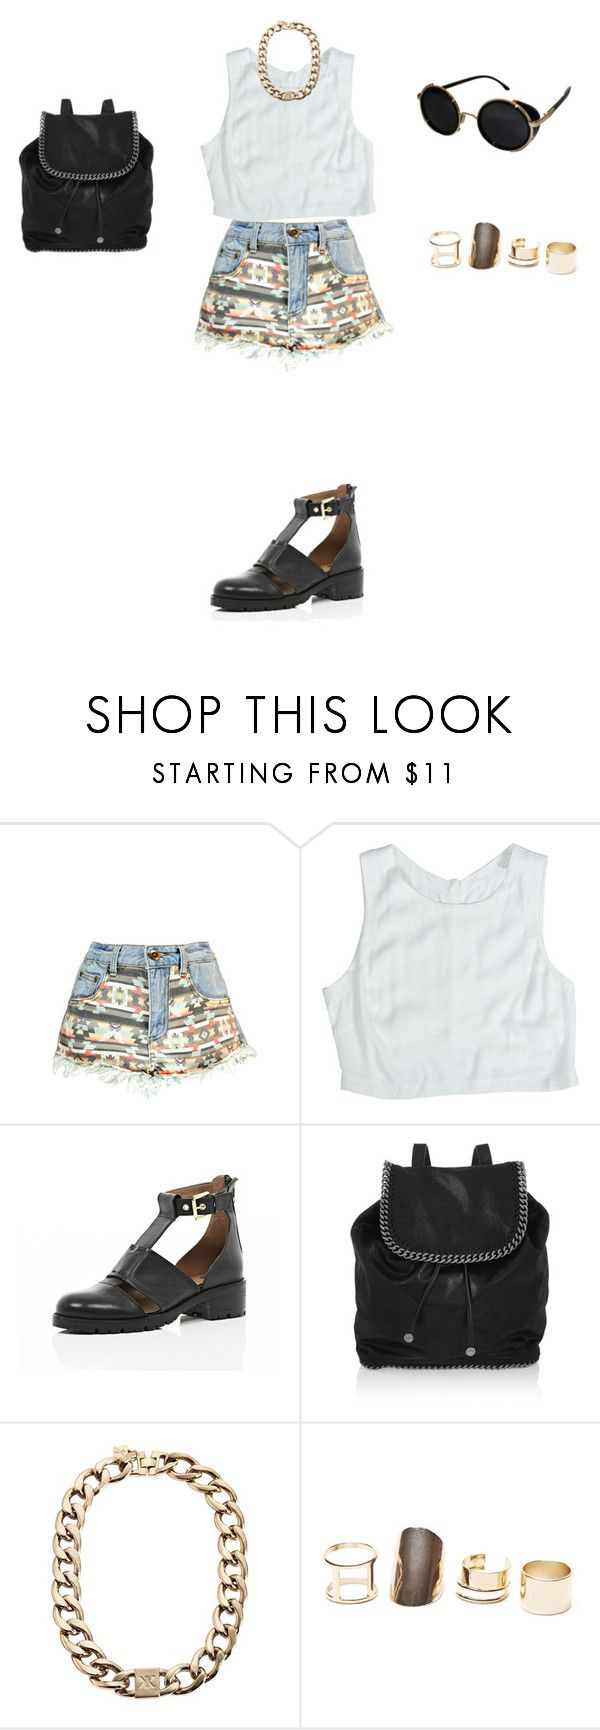 """Untitled #45"" by elenekhurtsilava on Polyvore featuring Boohoo, Lush Clothing, River Island, STELLA McCARTNEY, Kardashian Kollection, With Love From CA and Topshop"